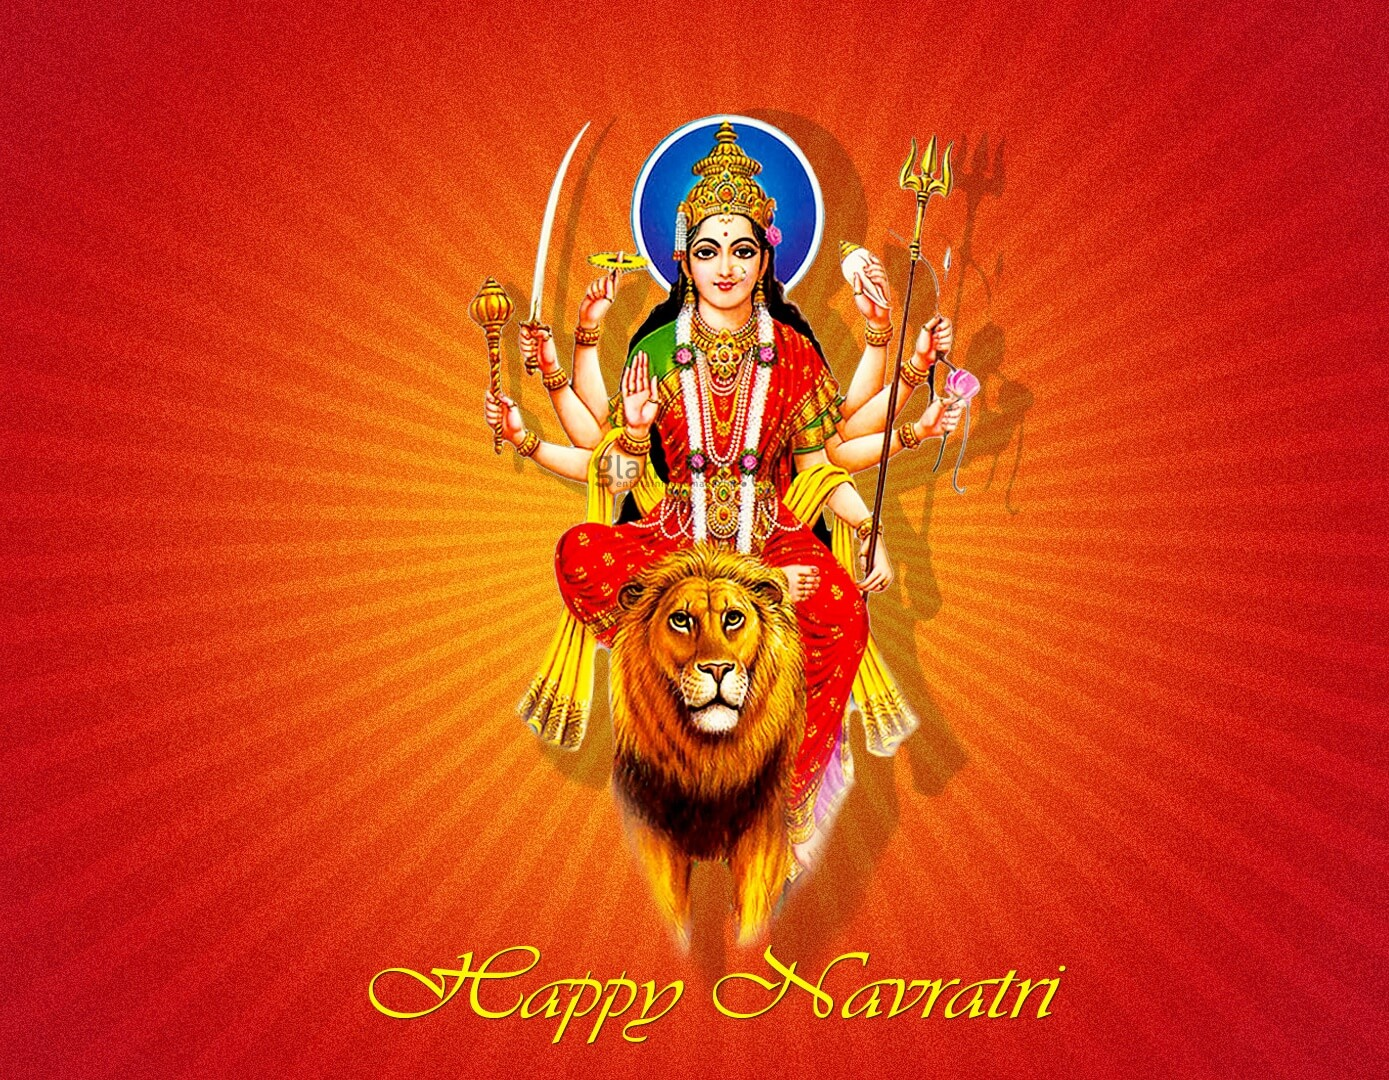 Happy Navratri 2017 : Wishes, Images, Quotes, Sms, HD Wallpapers